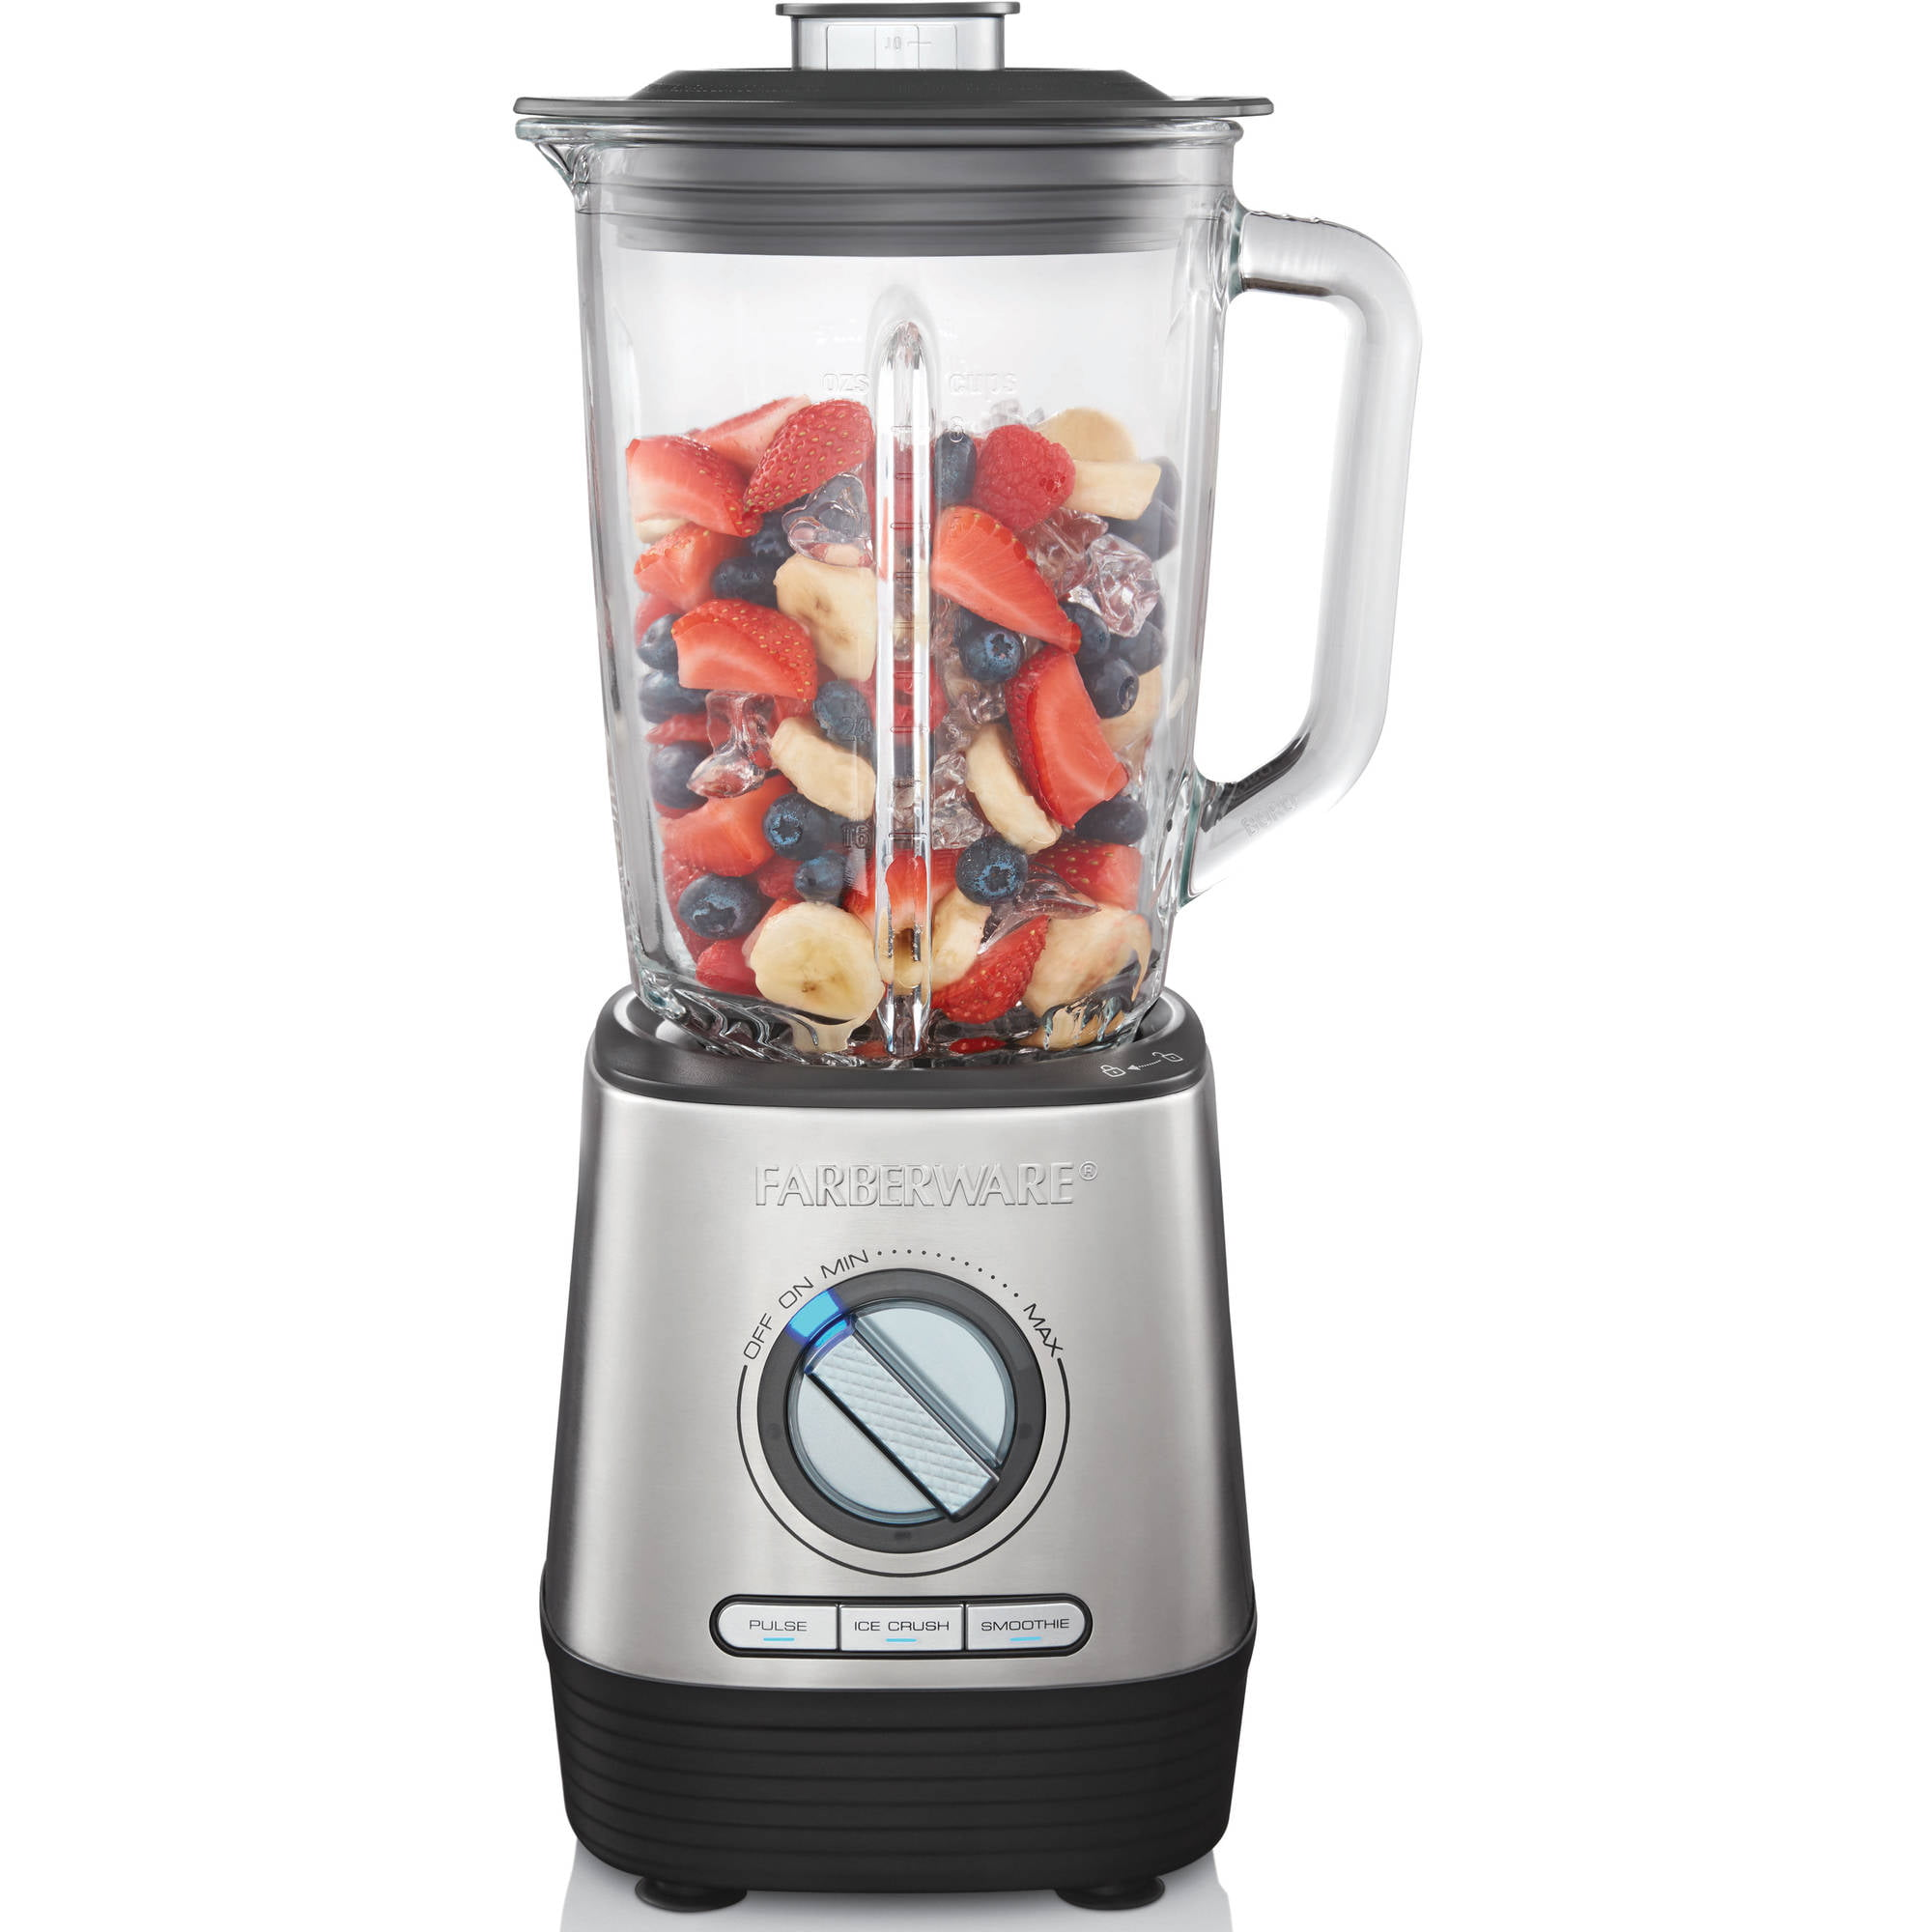 Farberware Performance Blender by MIDEA ELECTRIC TRADING SINGAPORE CO PTE LTD